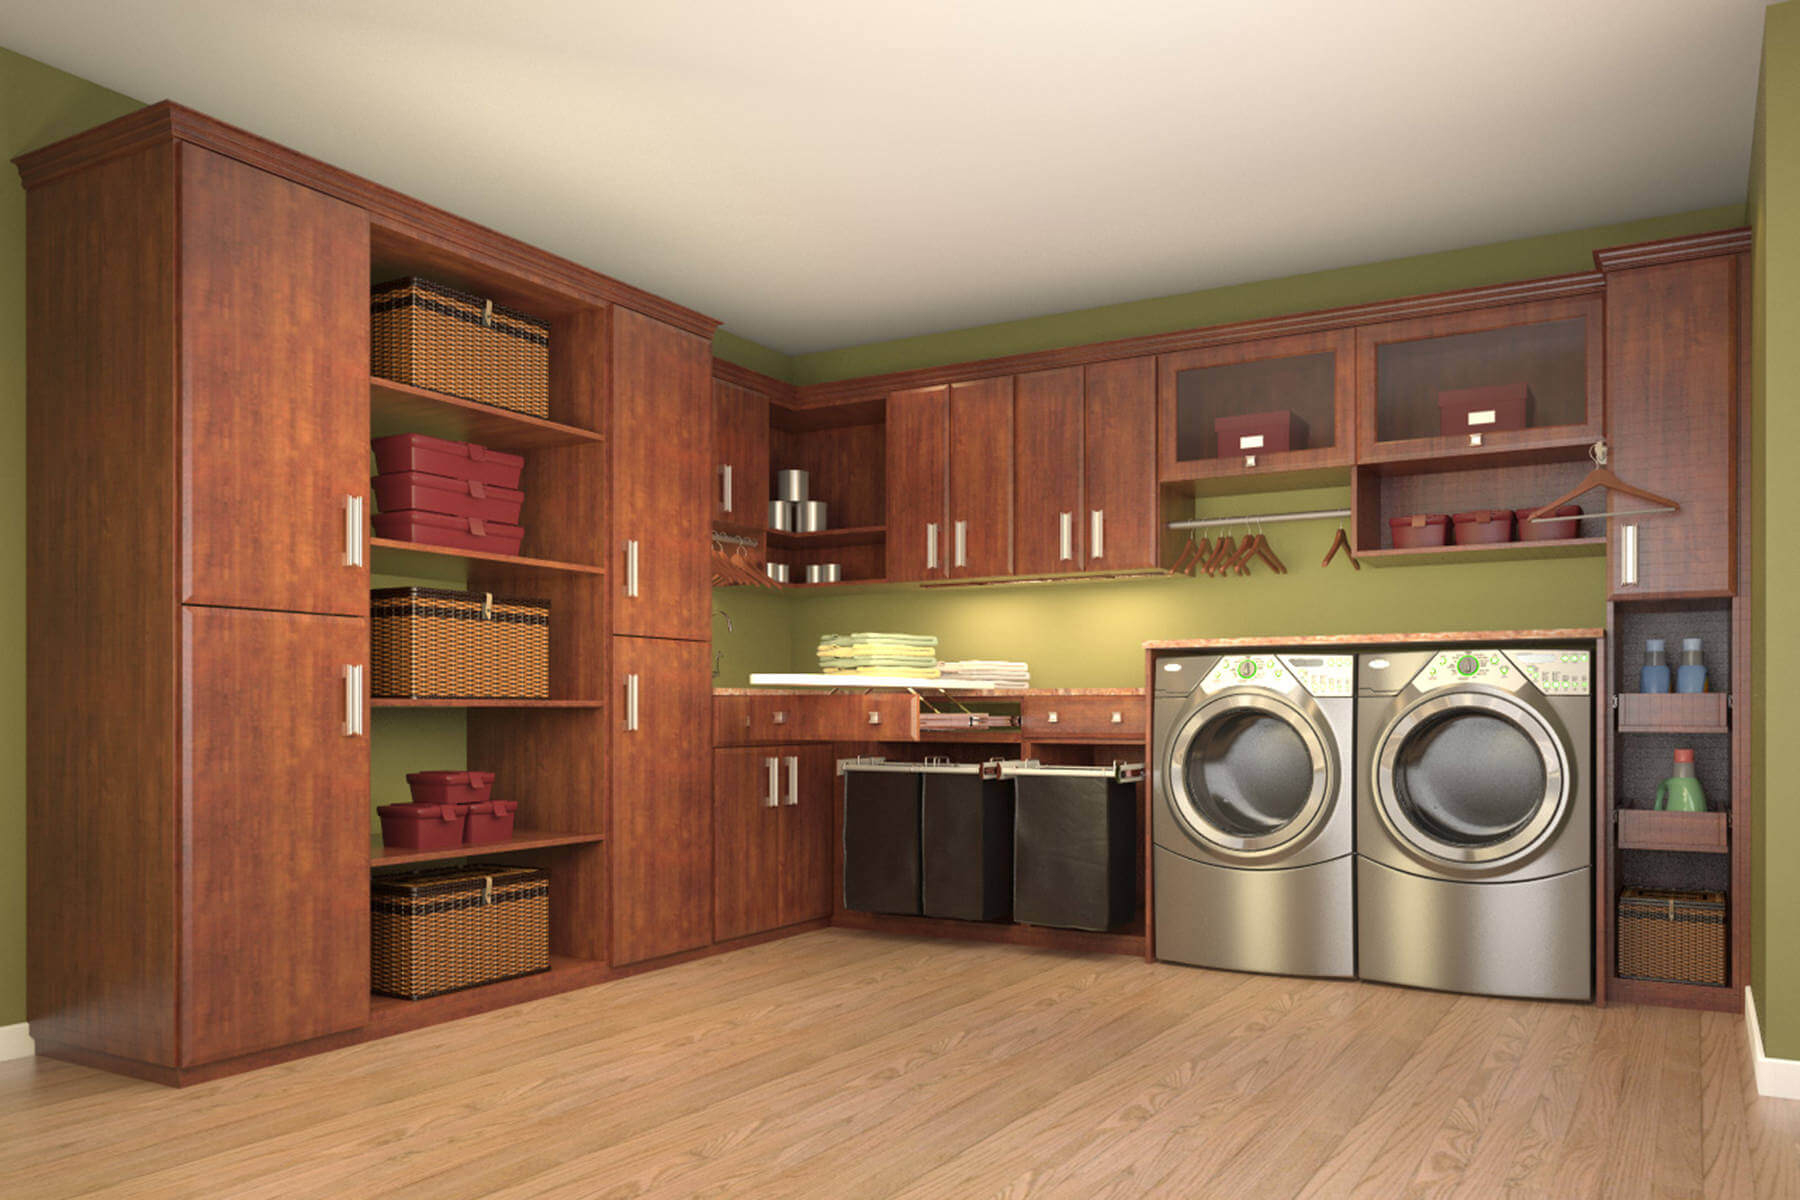 very organized and neat laundry room featuring pull outs and laundry